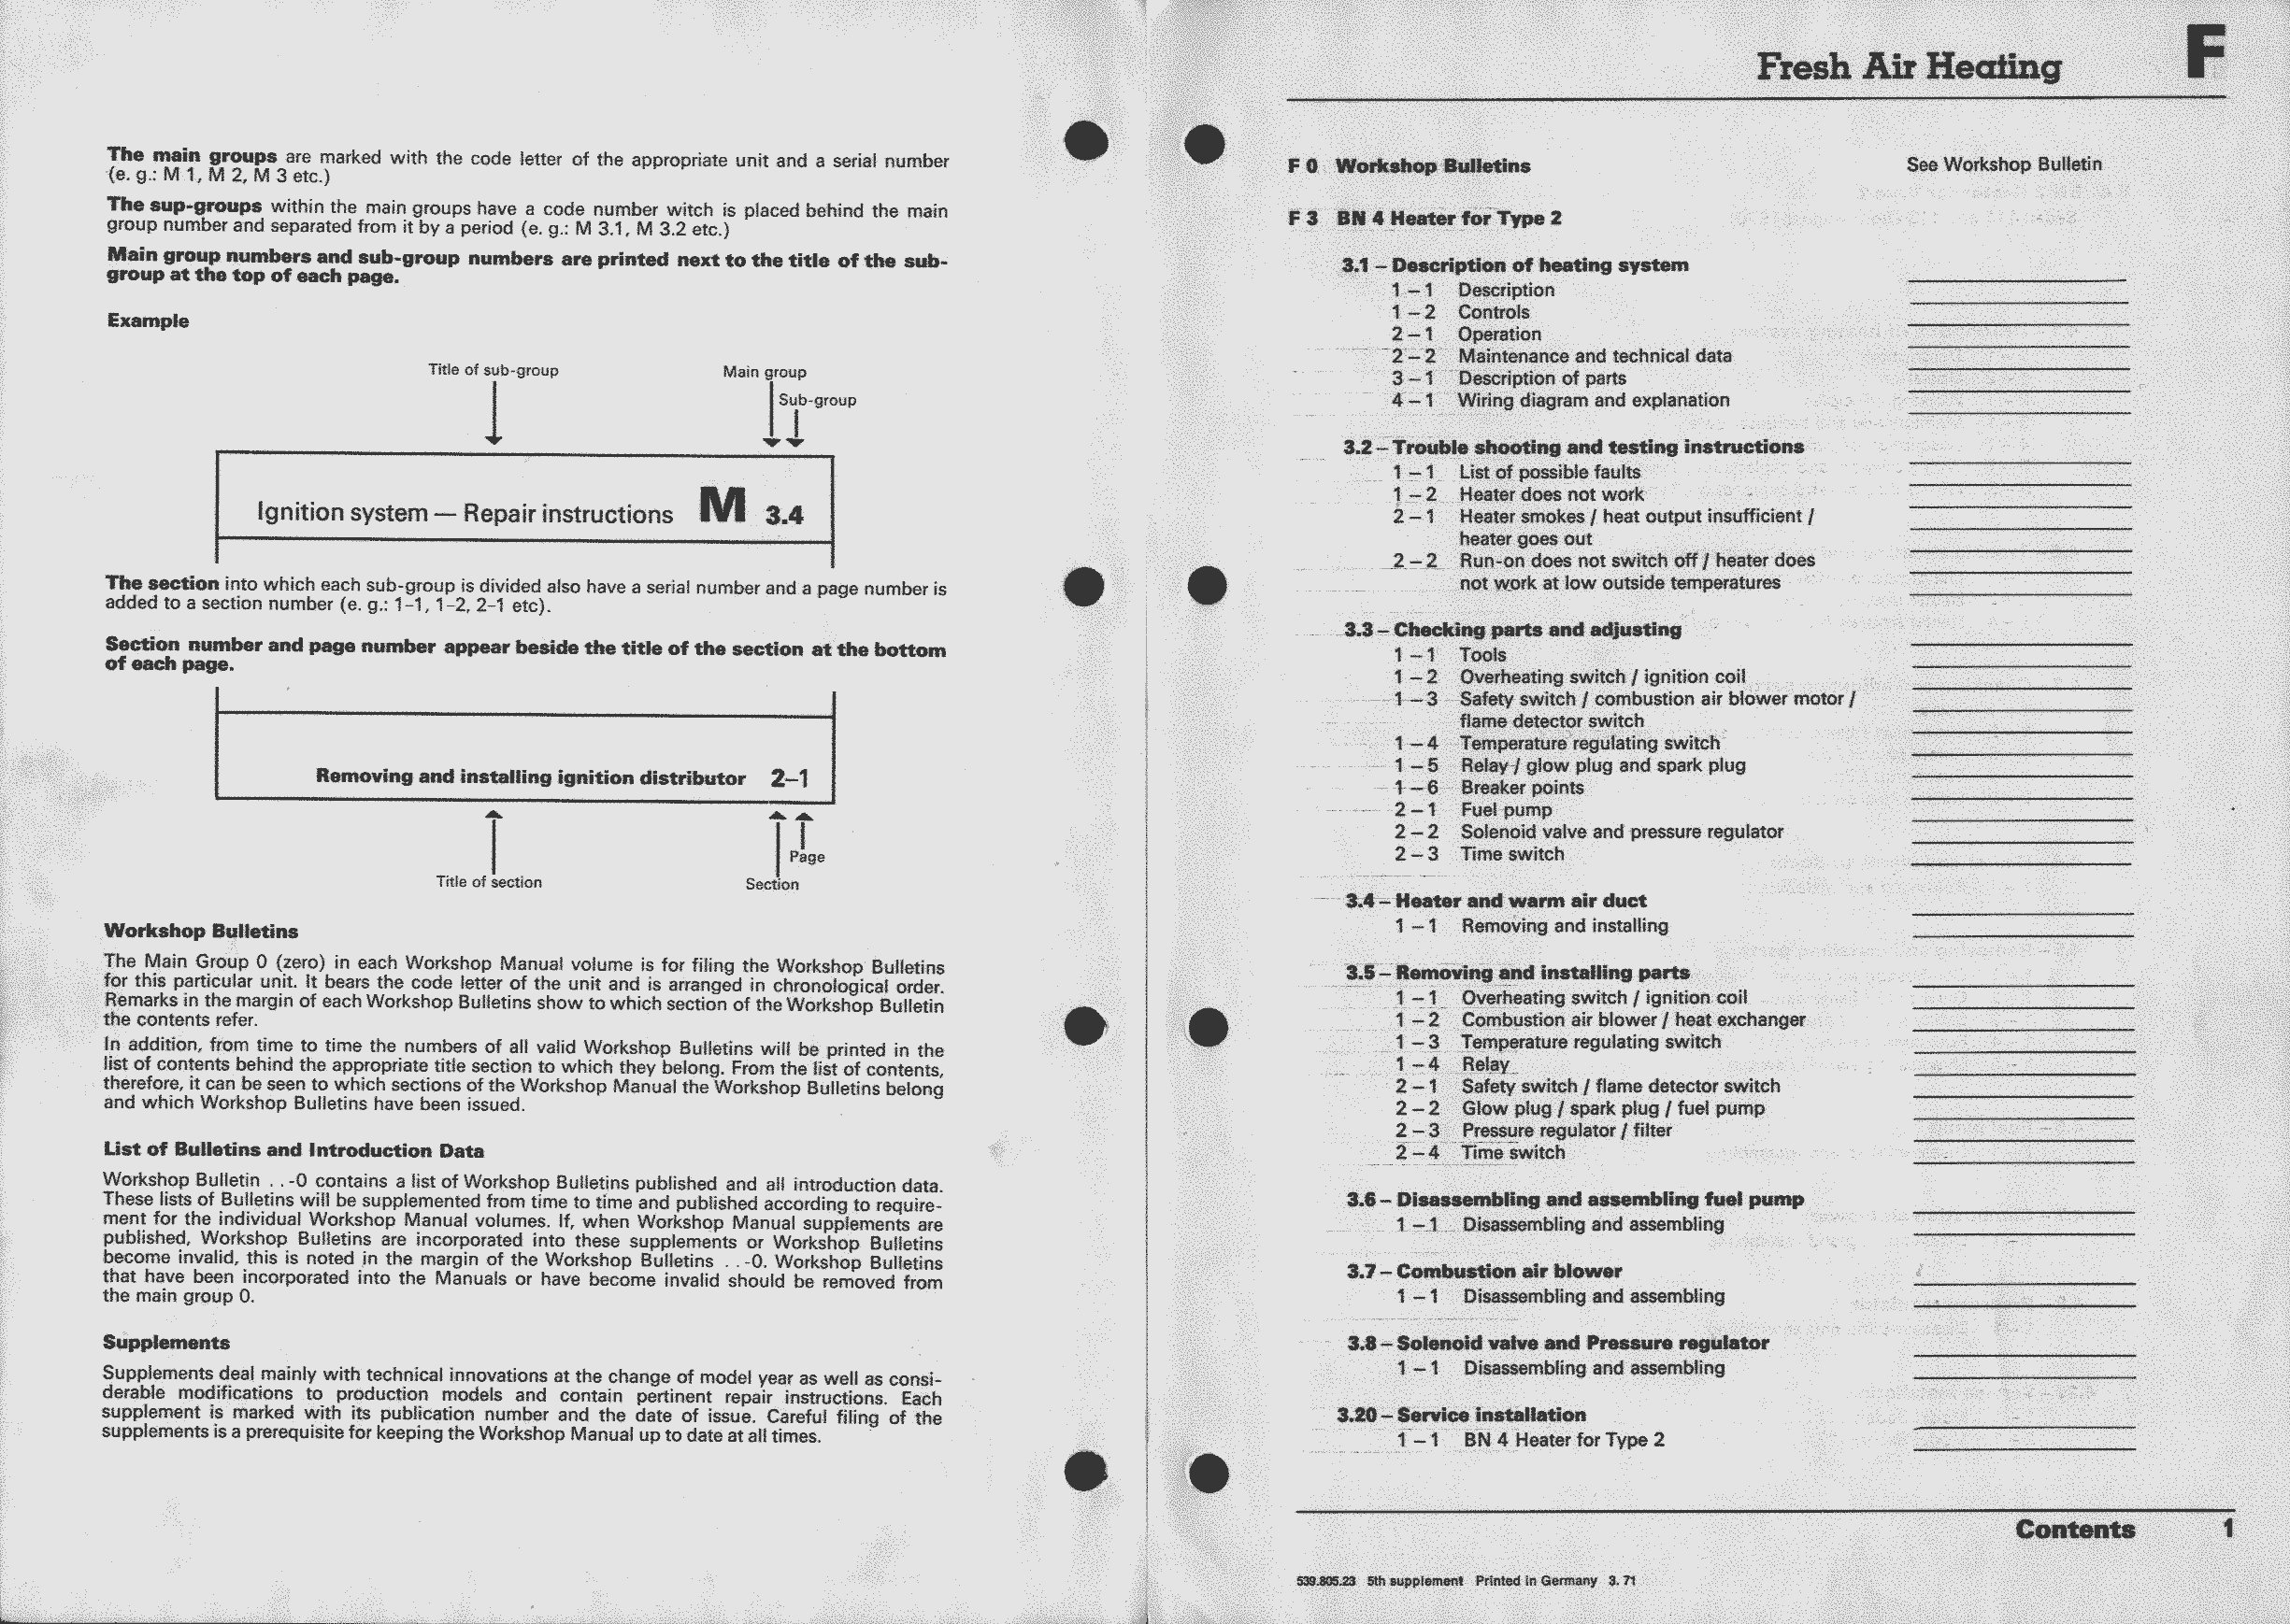 Obsolete Air Cooled Documentation Project Vw Workshop Manual Wiring Diagram Further Control Valve Parts On Understanding 003 How To Use The Bn 4 Type 2 Index